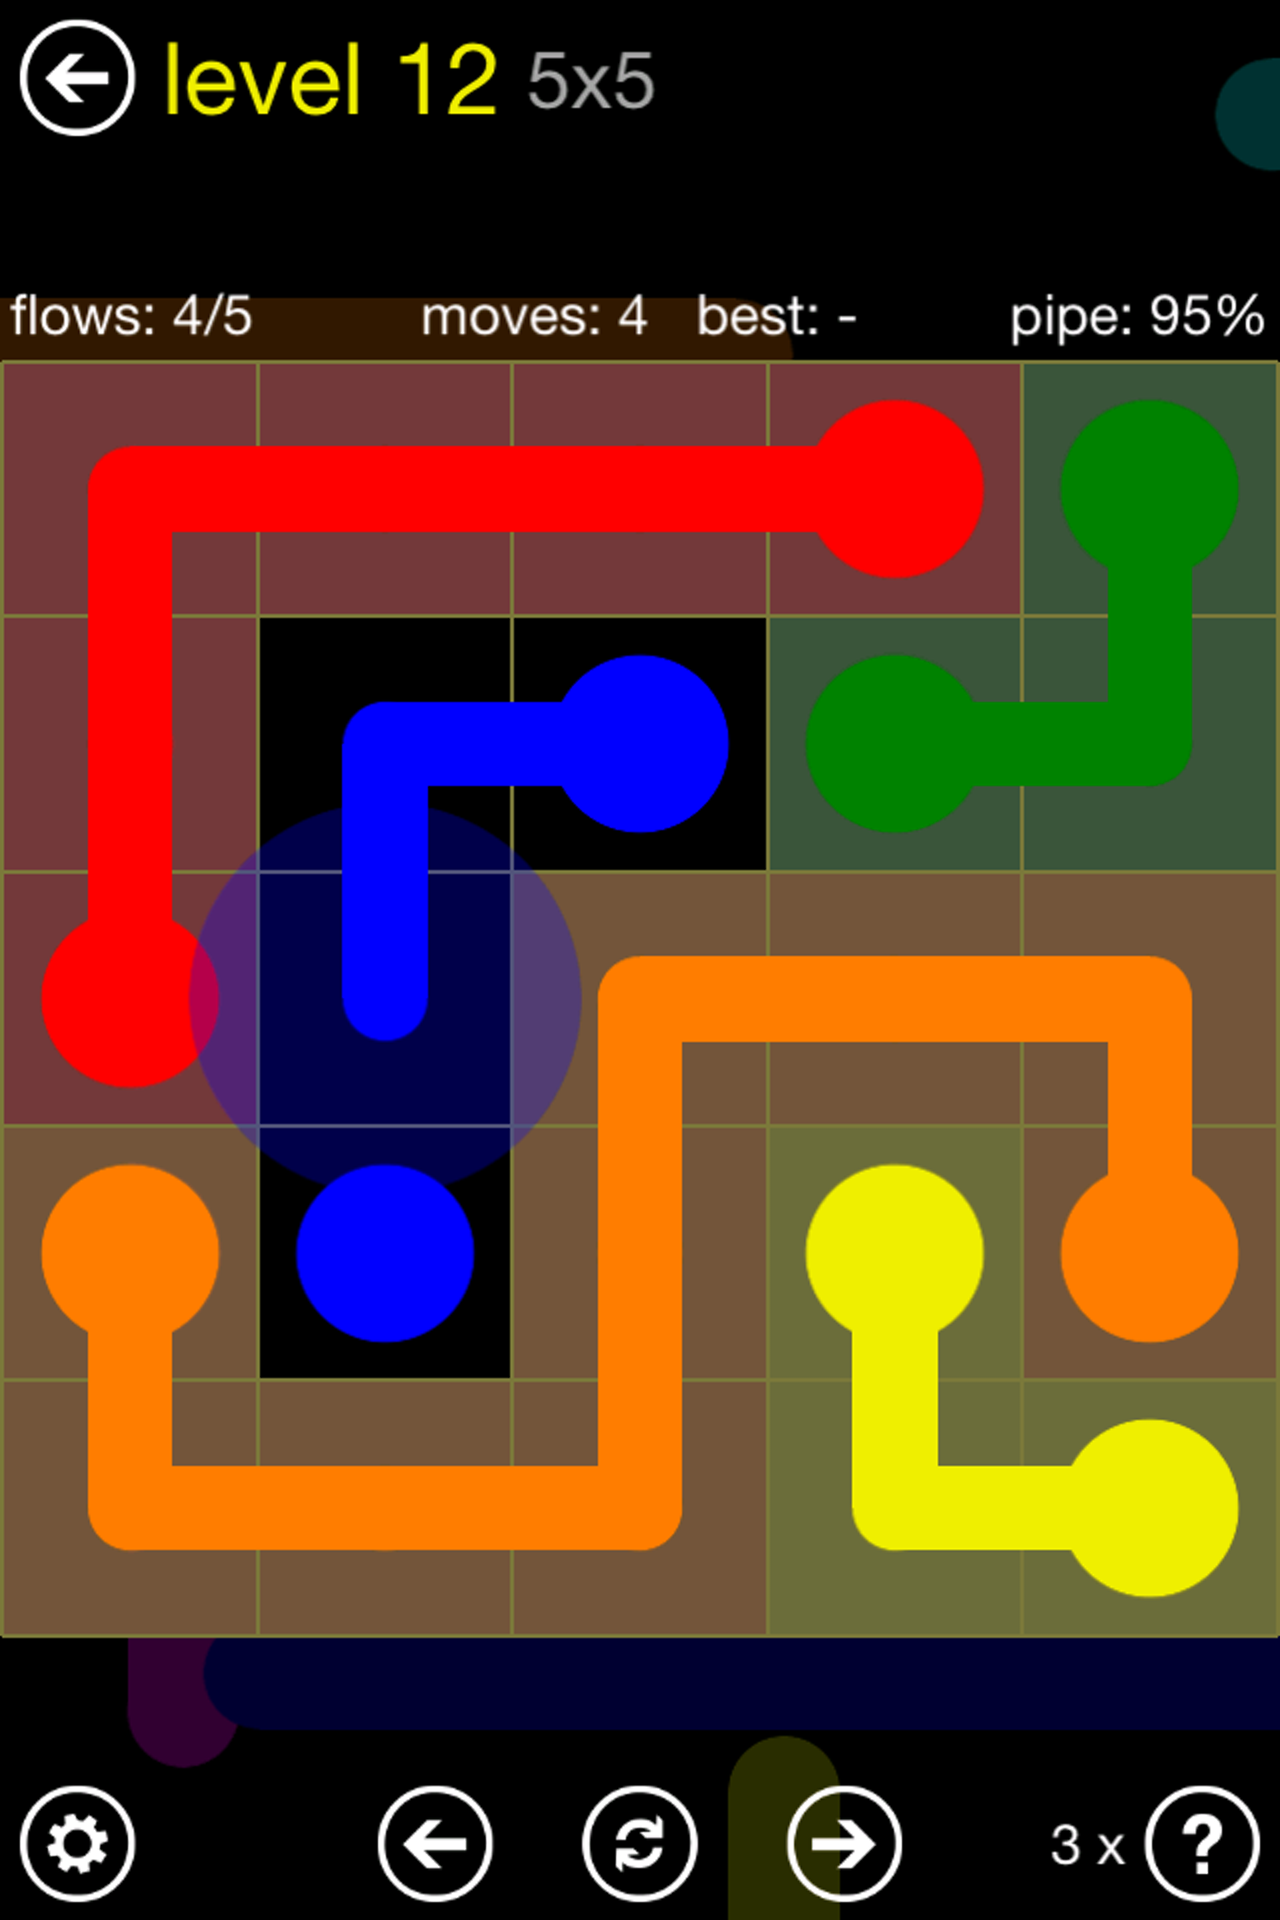 Connect same colored dotes to win.